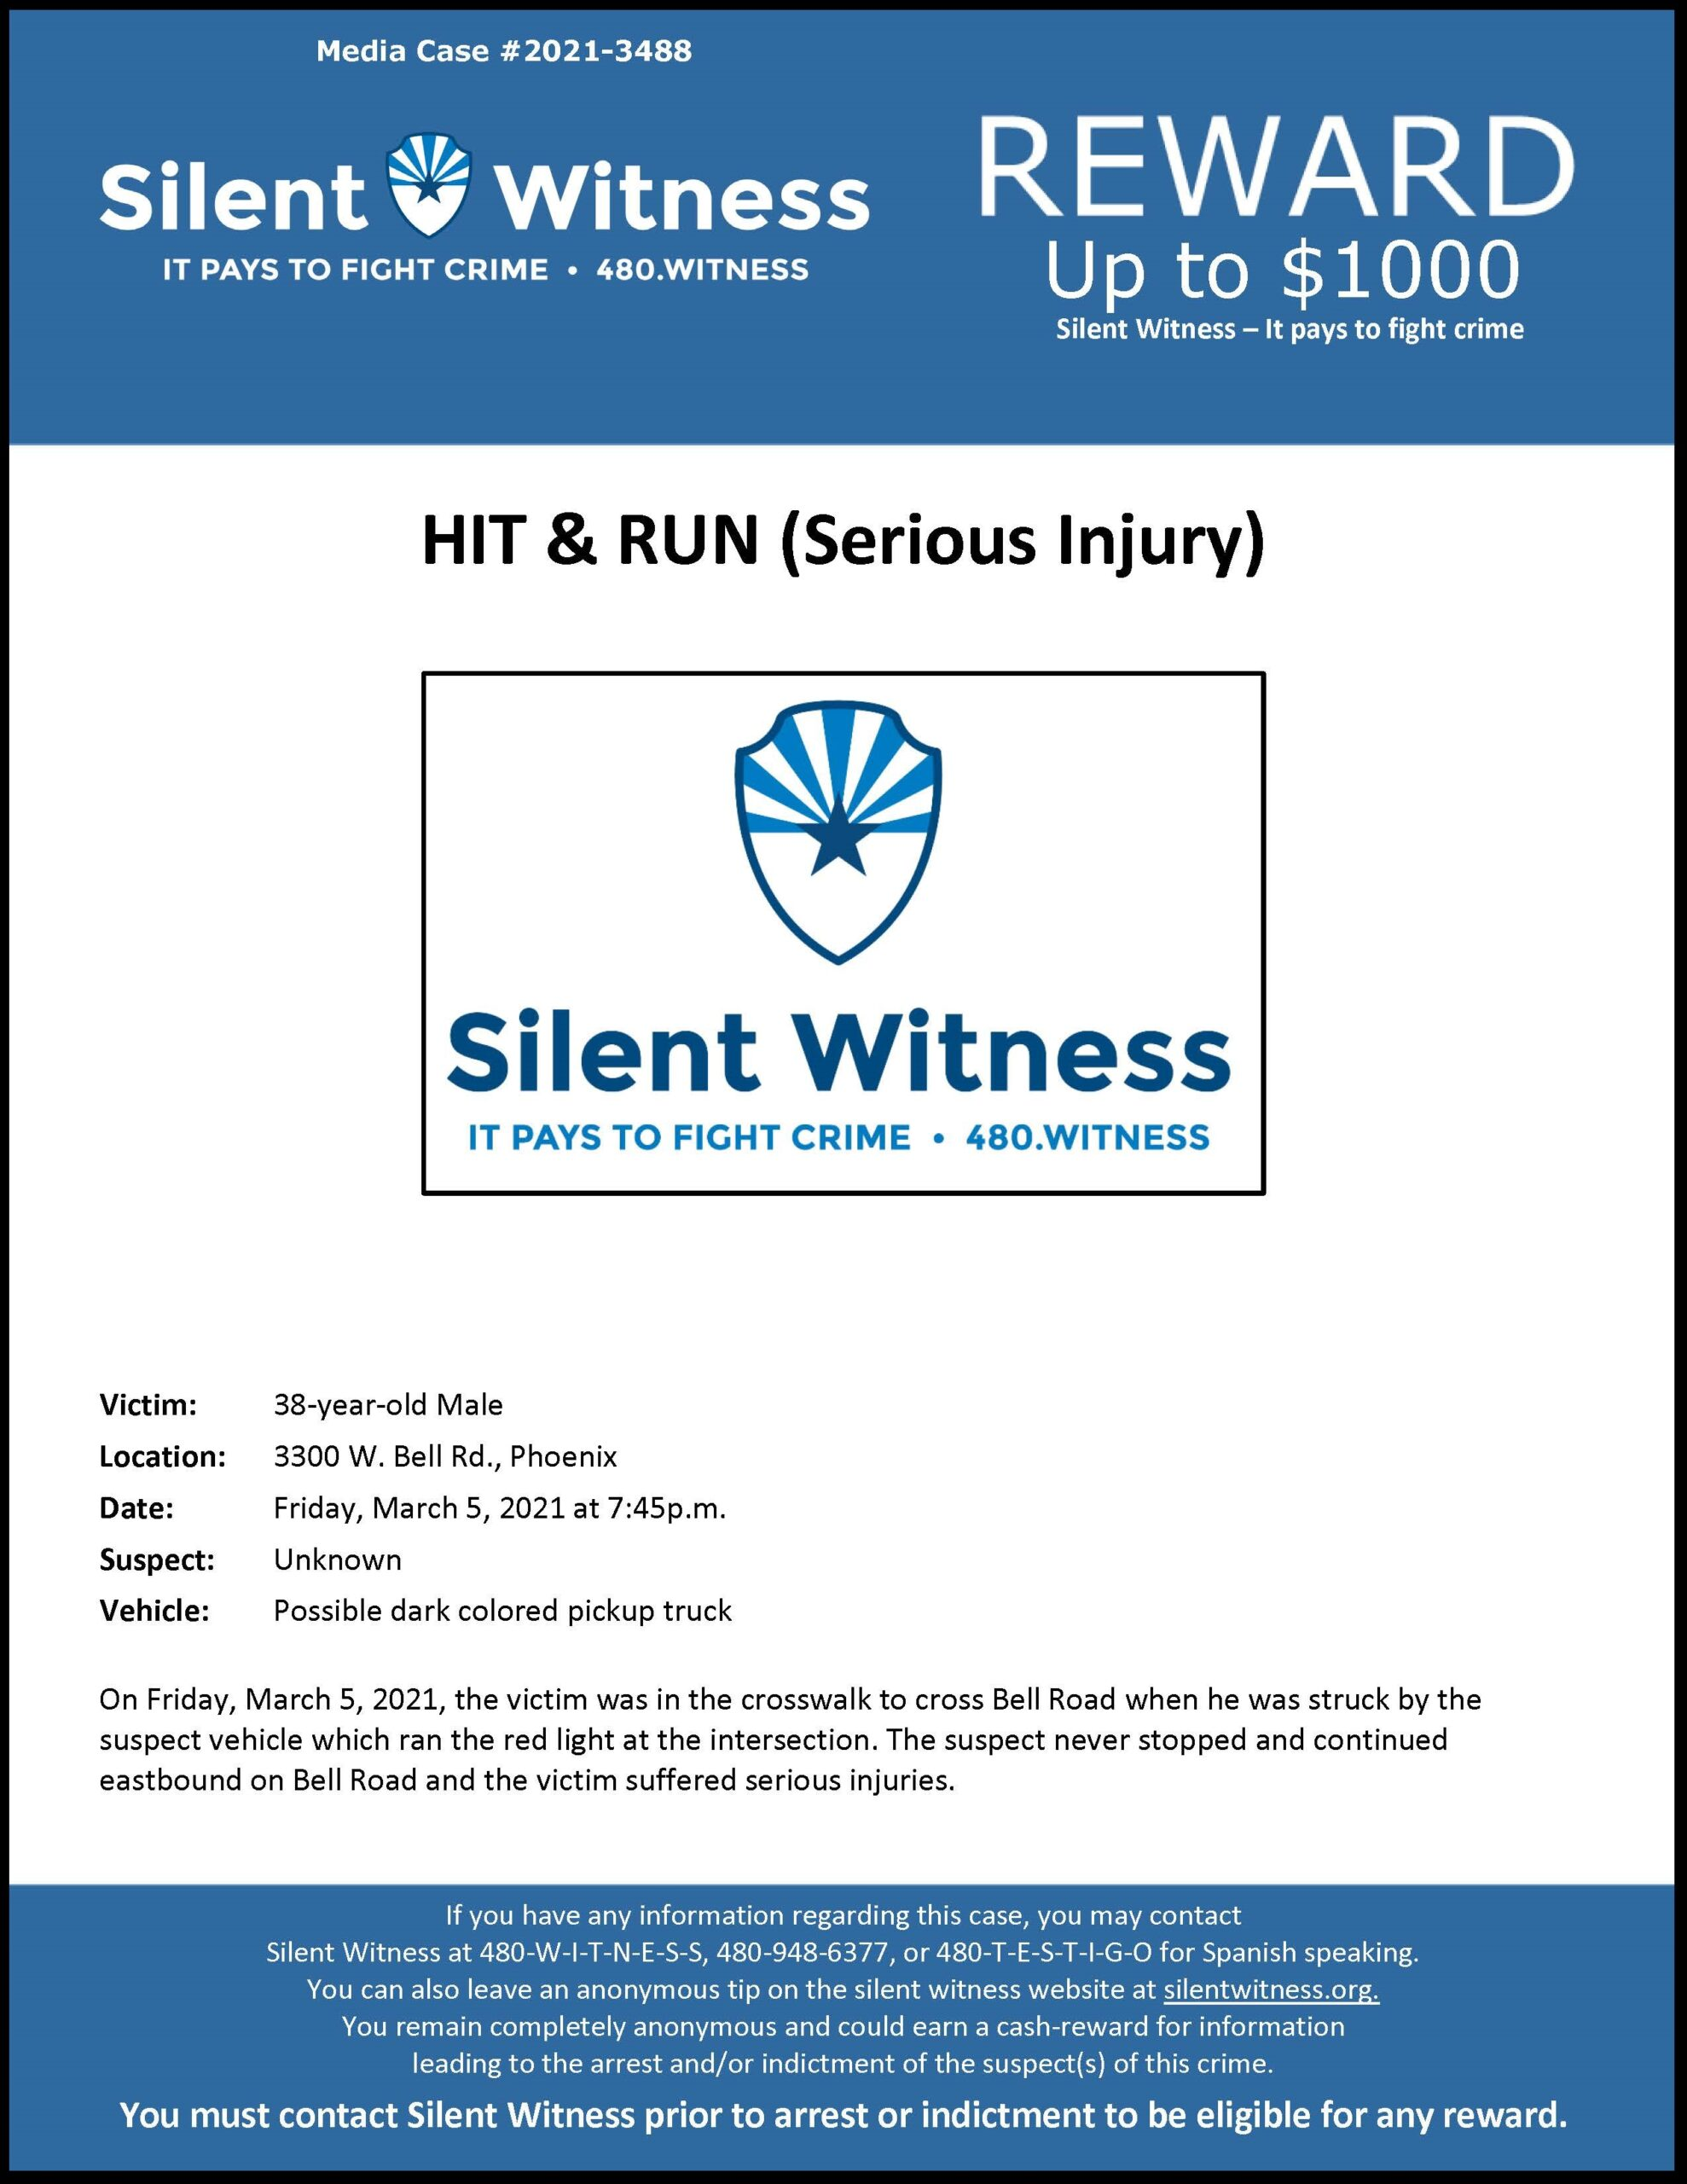 Hit & Run (Serious Injury) /38-year-old Male / 3300 W. Bell Rd., Phoenix